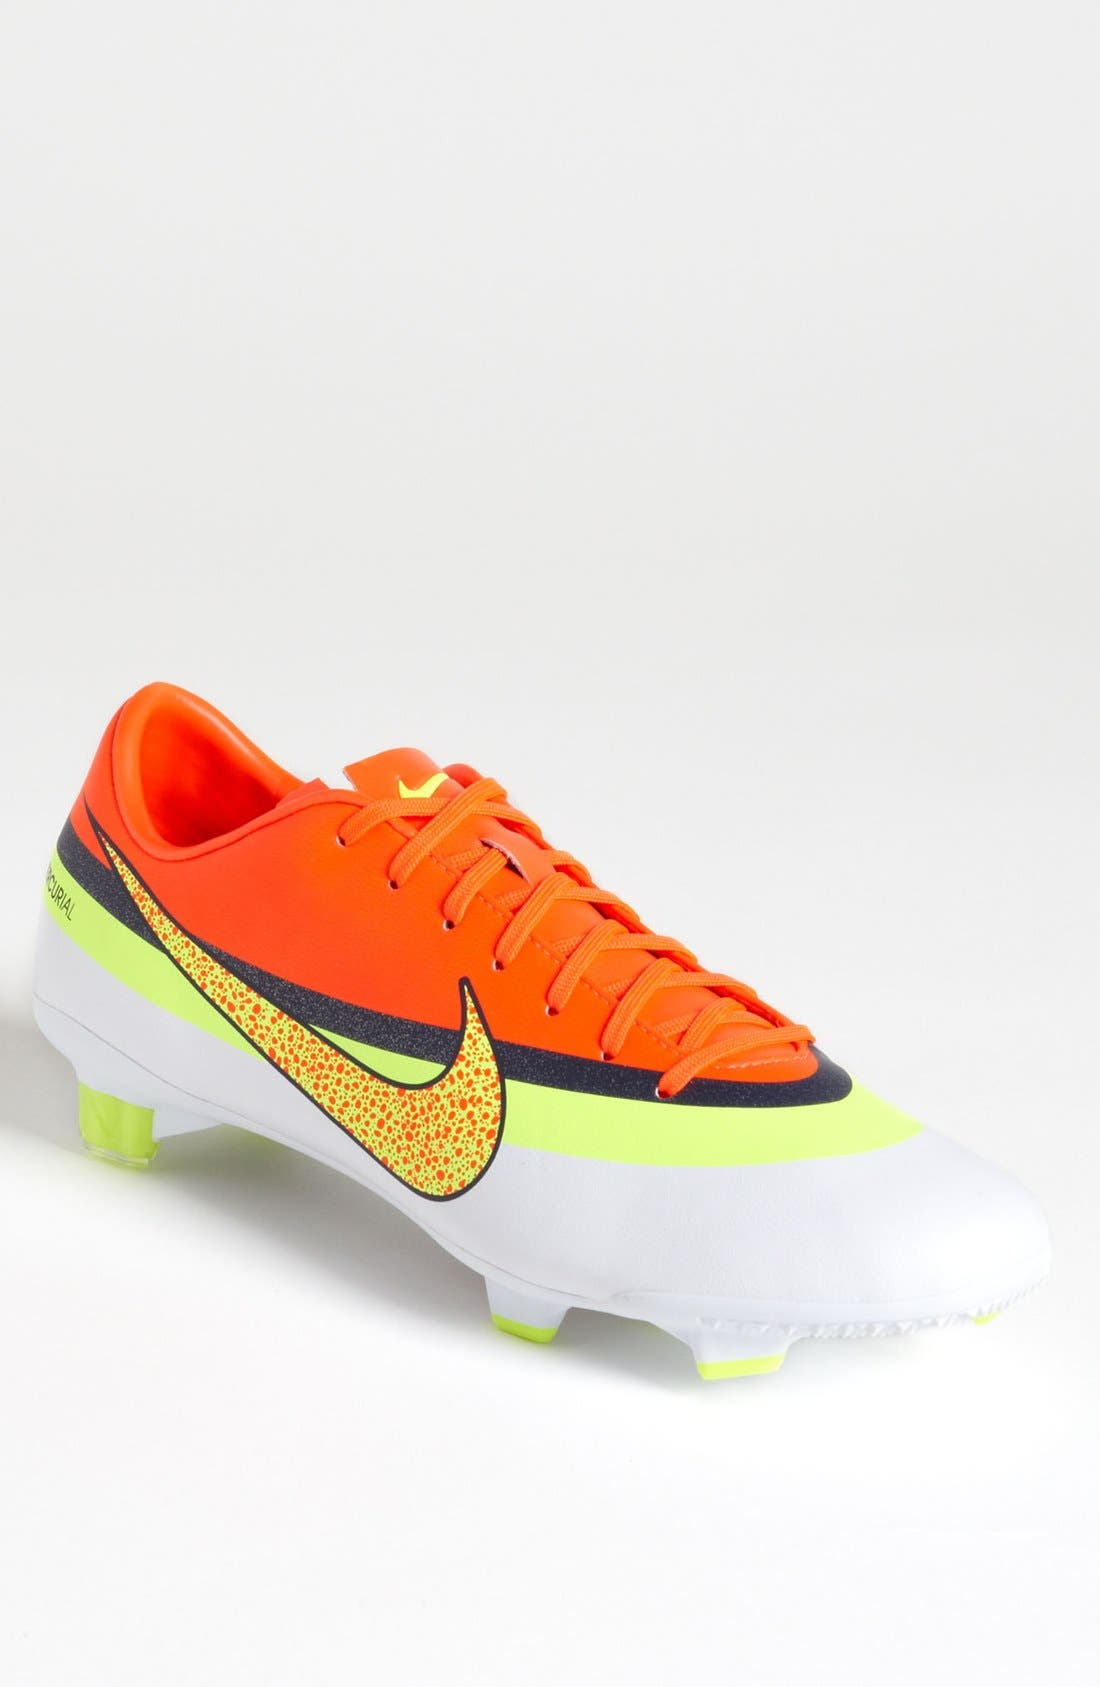 Main Image - Nike 'Mercurial Veloce CR FG' Soccer Cleat (Men)